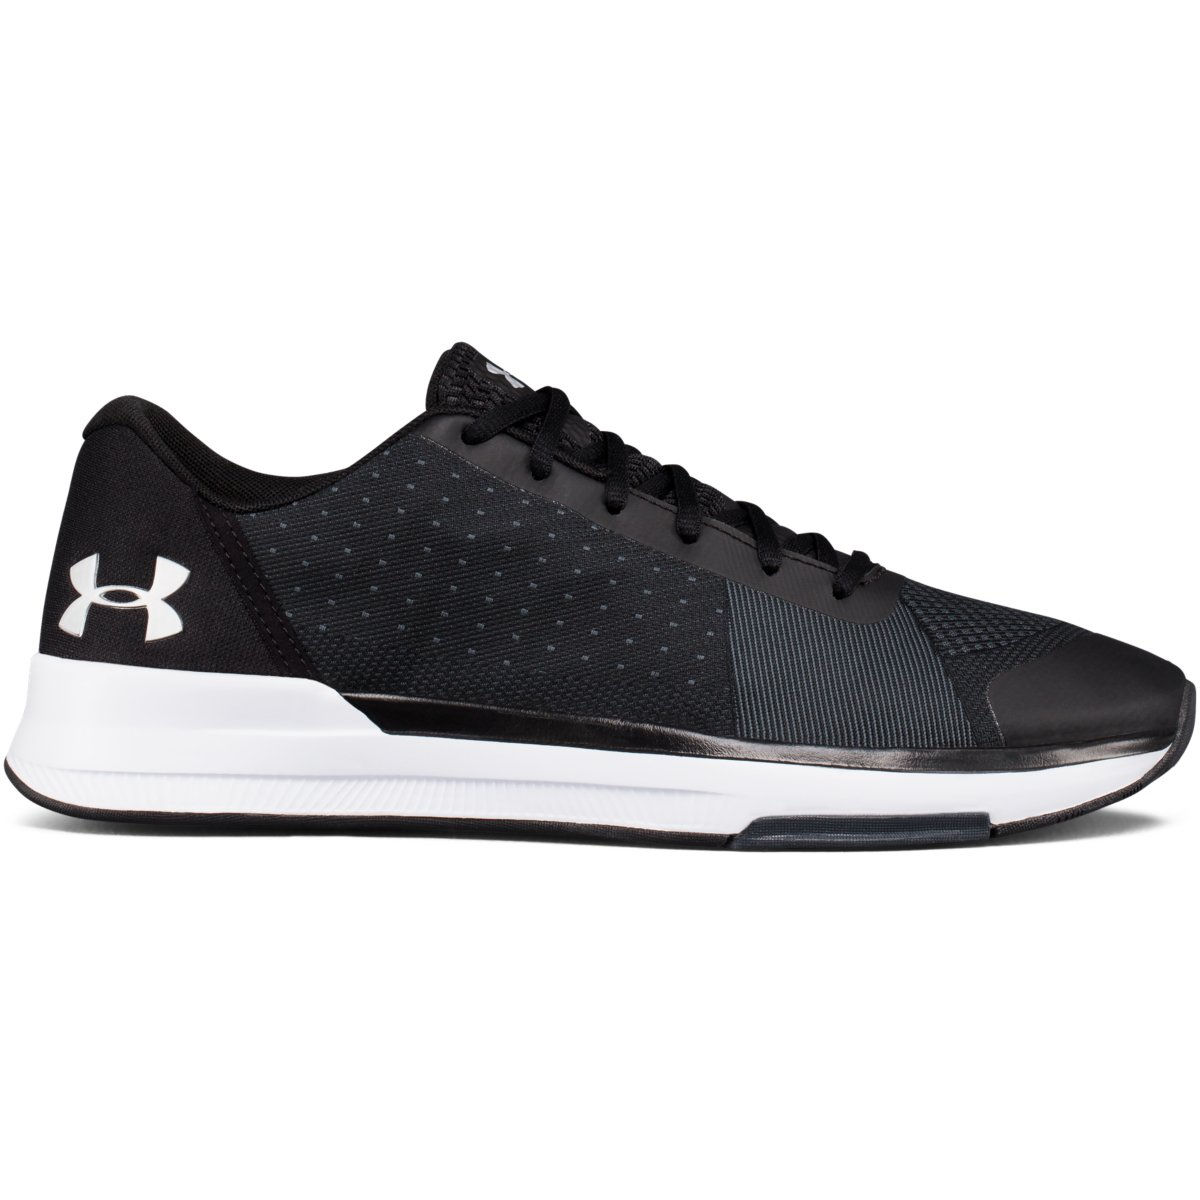 Chaussures Under Armour Showstopper - UK 13 BLACK